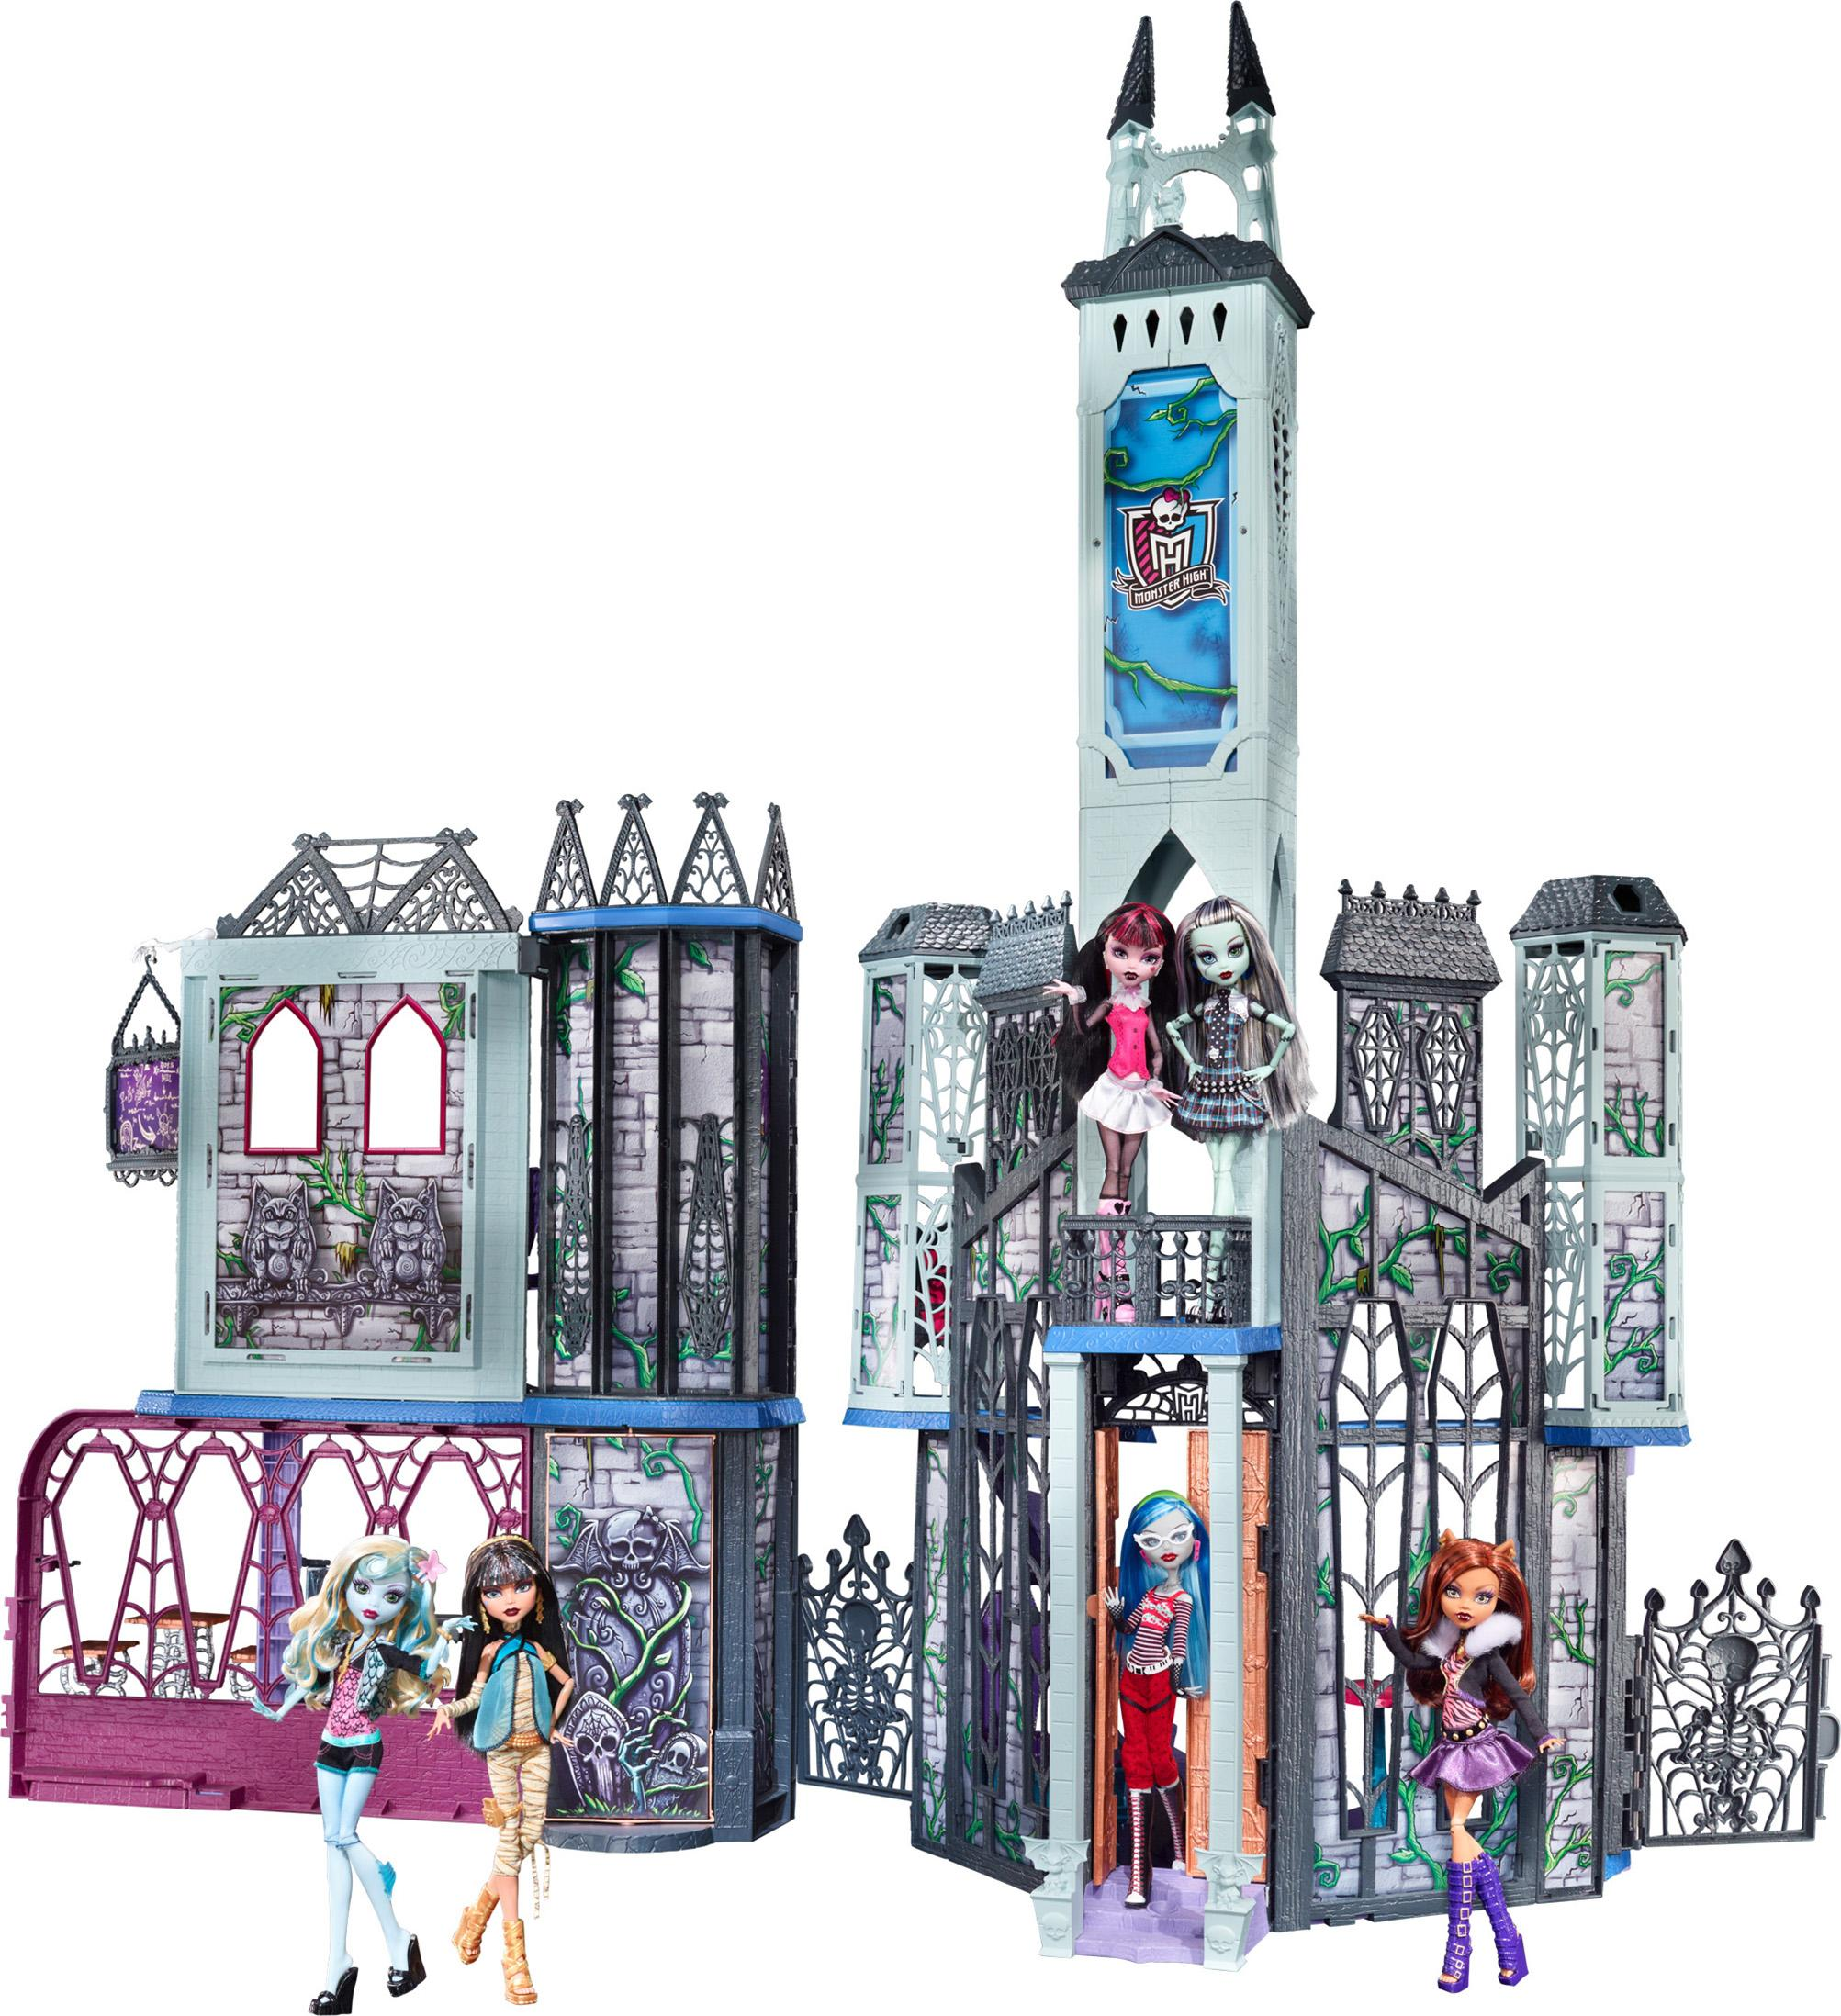 New Monster High Deadluxe High School Playset Girl 5 to 7 Years